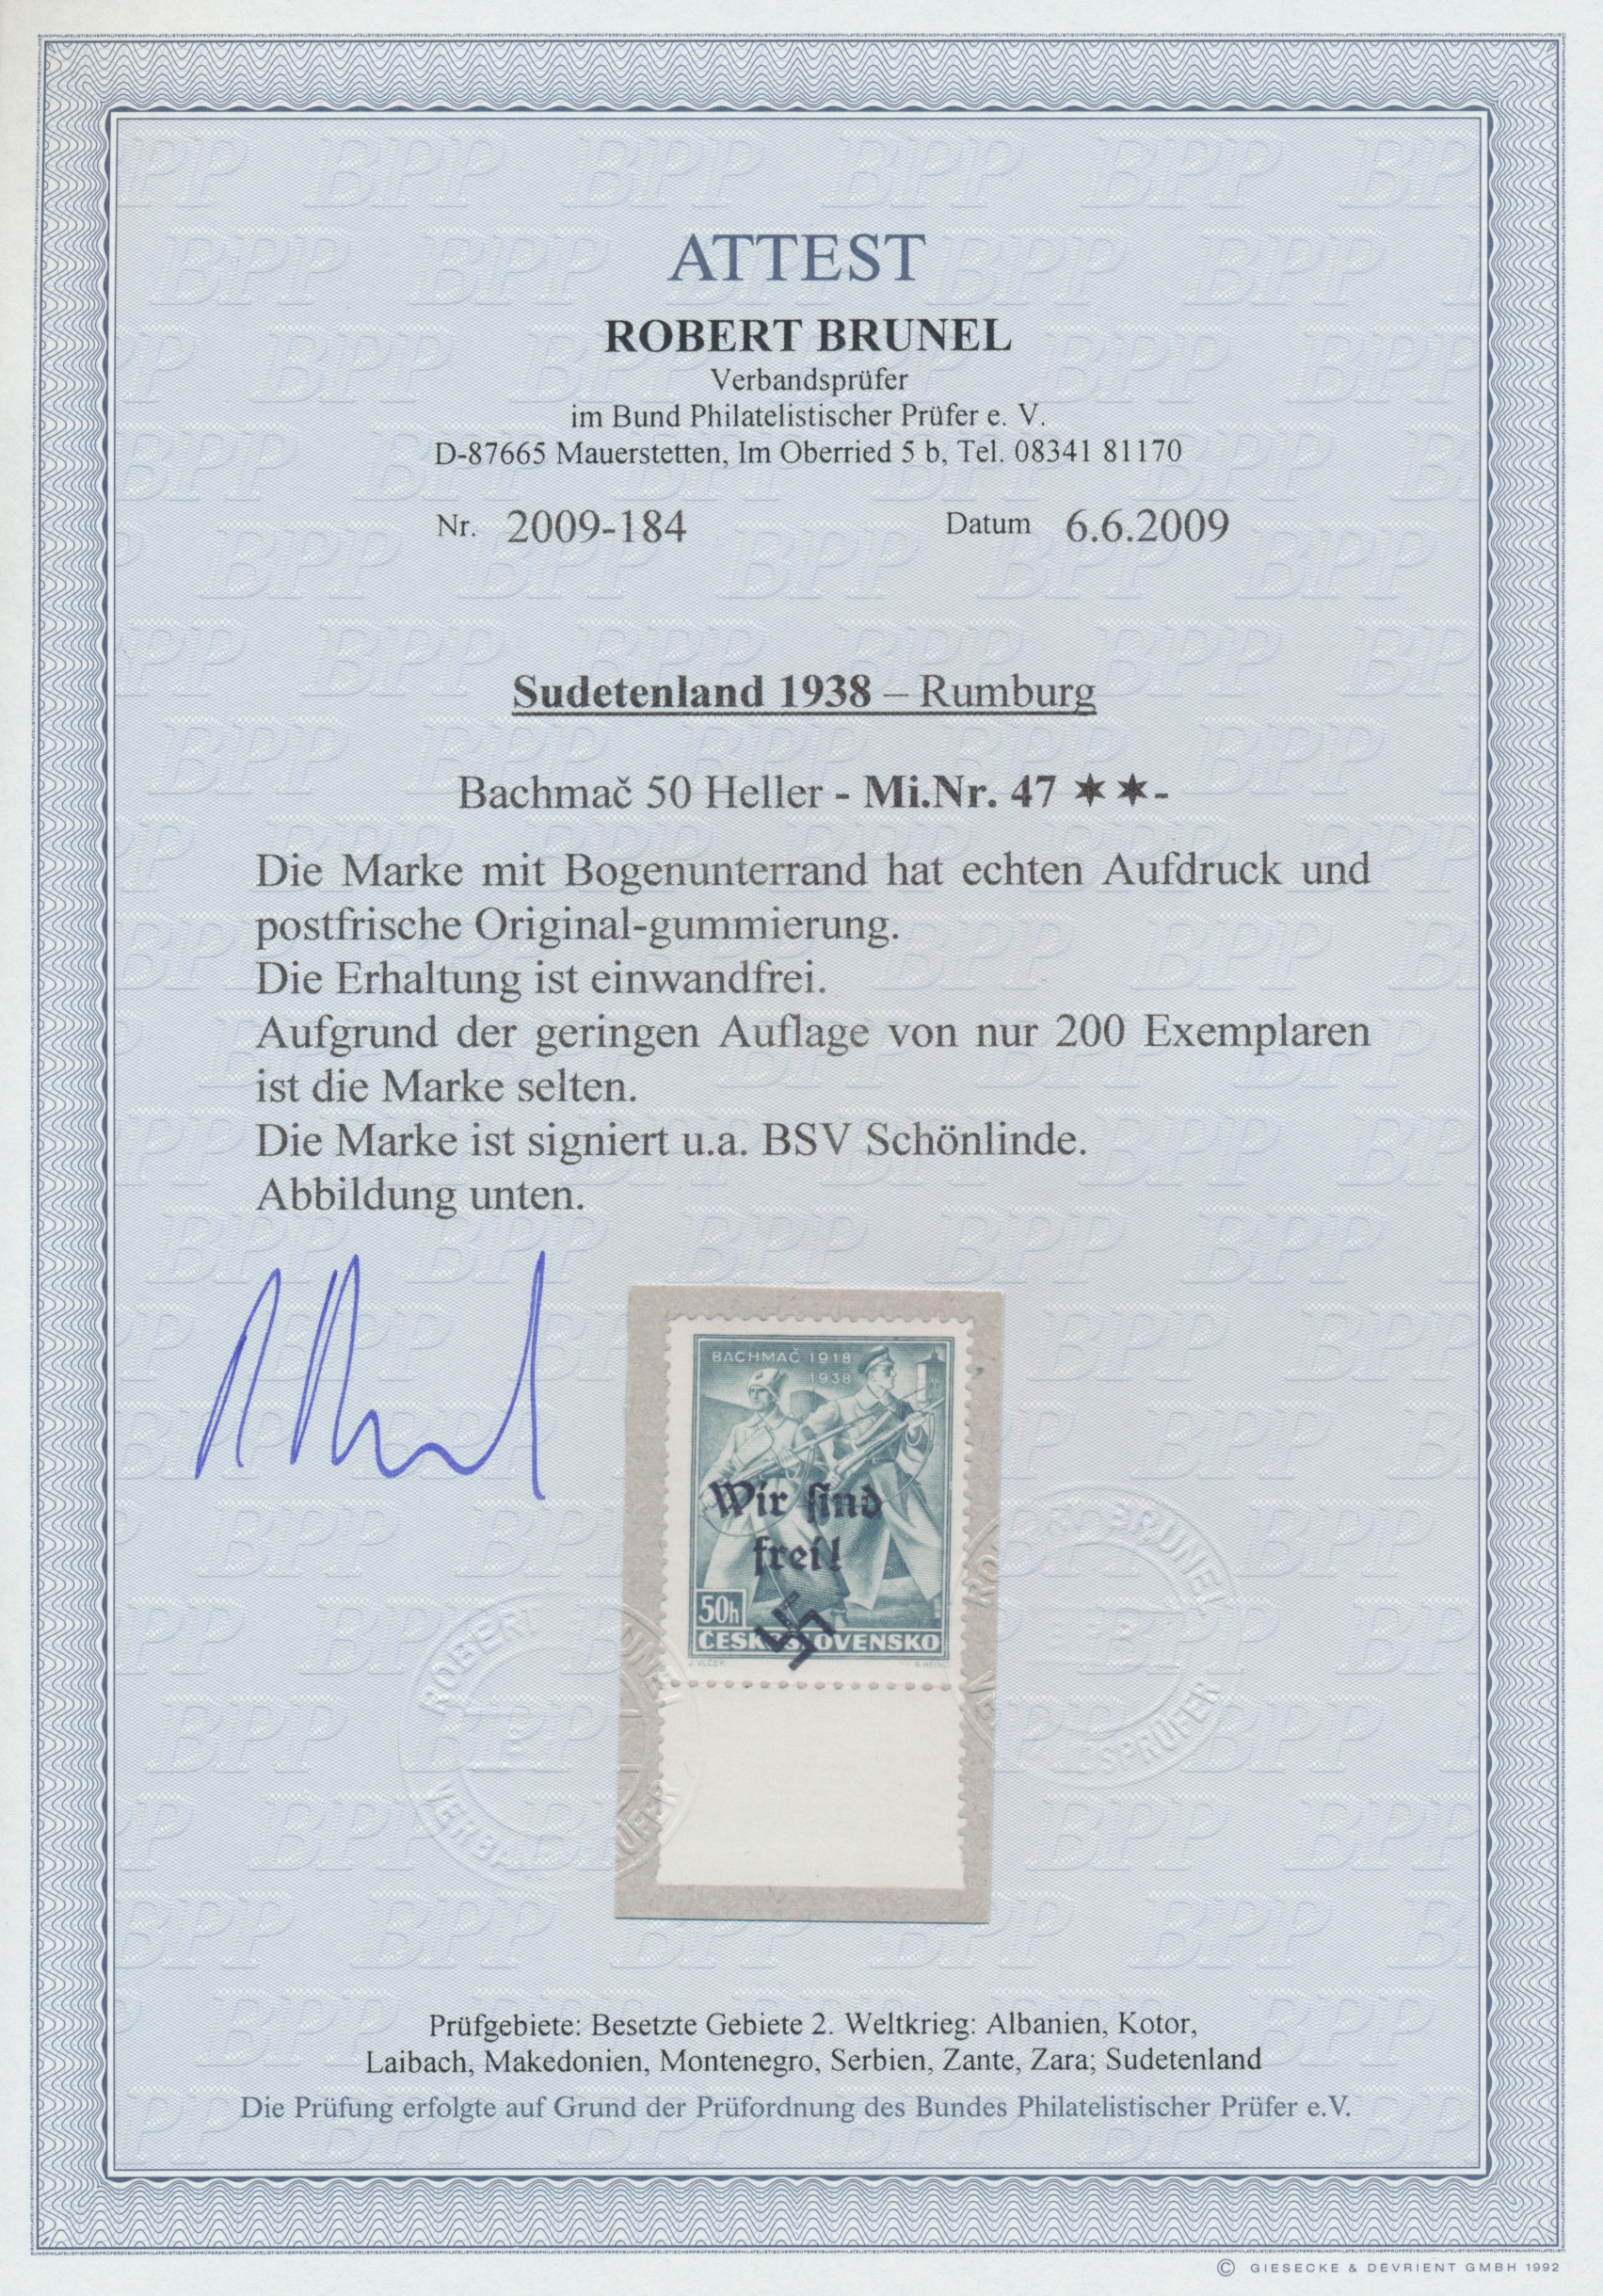 Lot 19267 - sudetenland - rumburg  -  Auktionshaus Christoph Gärtner GmbH & Co. KG Auction #40 Germany, Picture Post Cards, Collections Overseas, Thematics